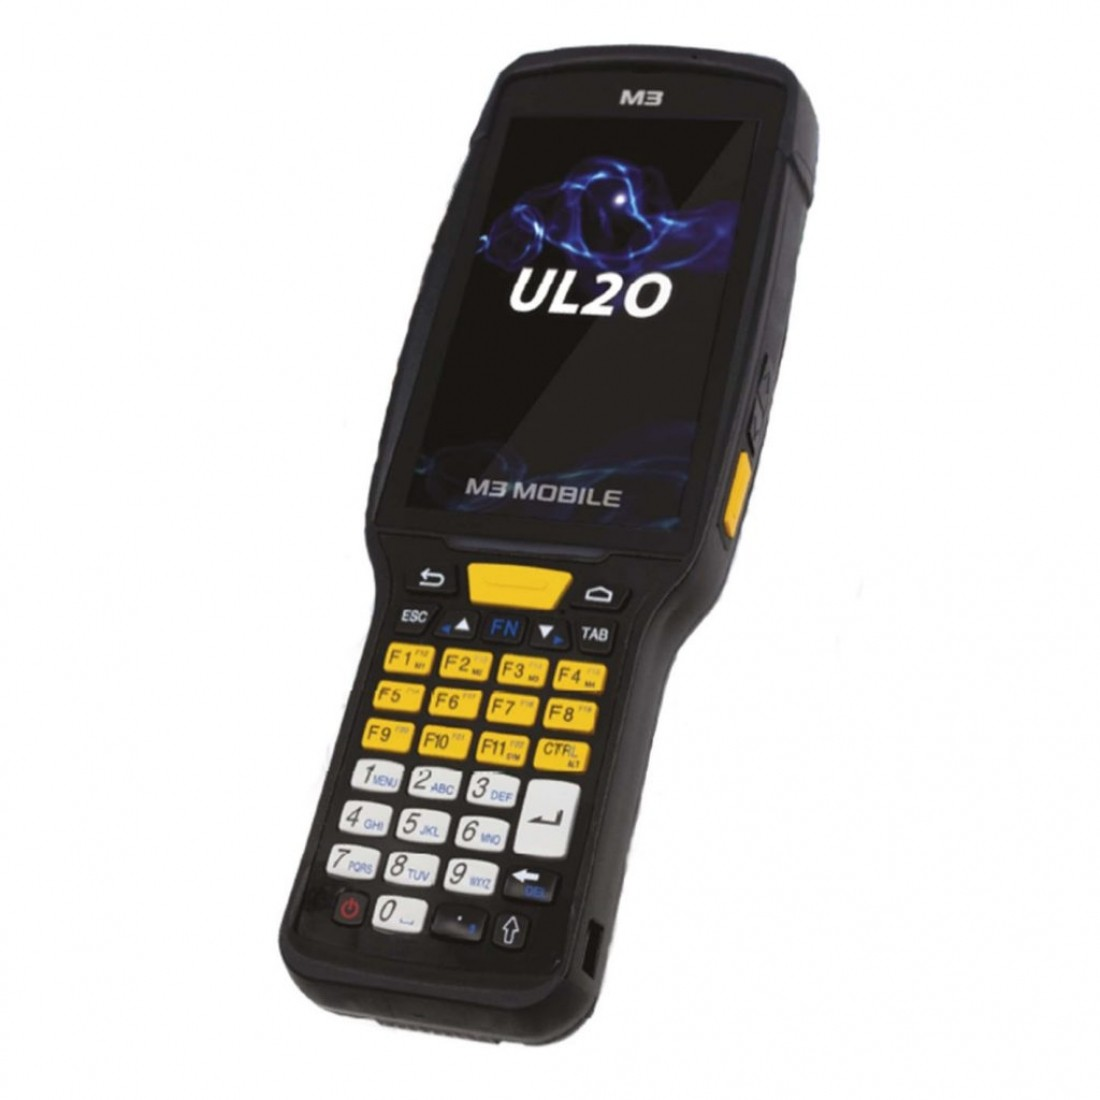 UL20 M3 Mobile copy